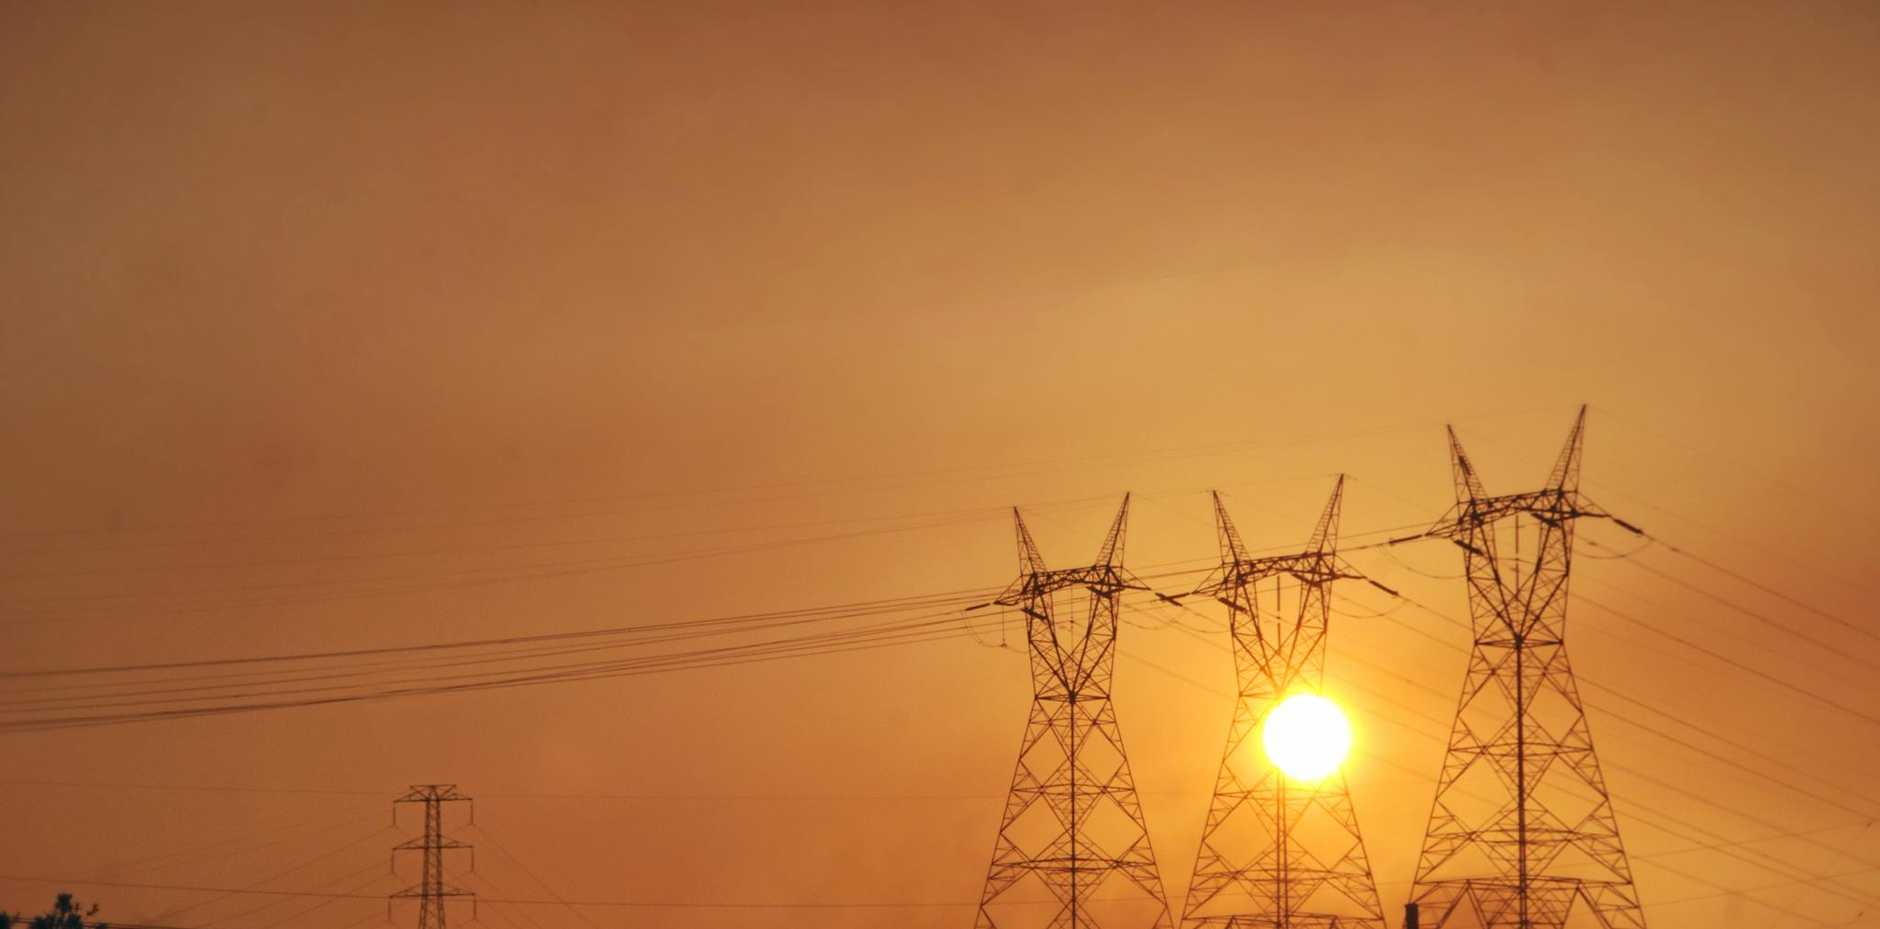 Eectricity pylons and power lines at sun set sun rise in Woolooga Photo Craig Warhurst/The Gympie Times